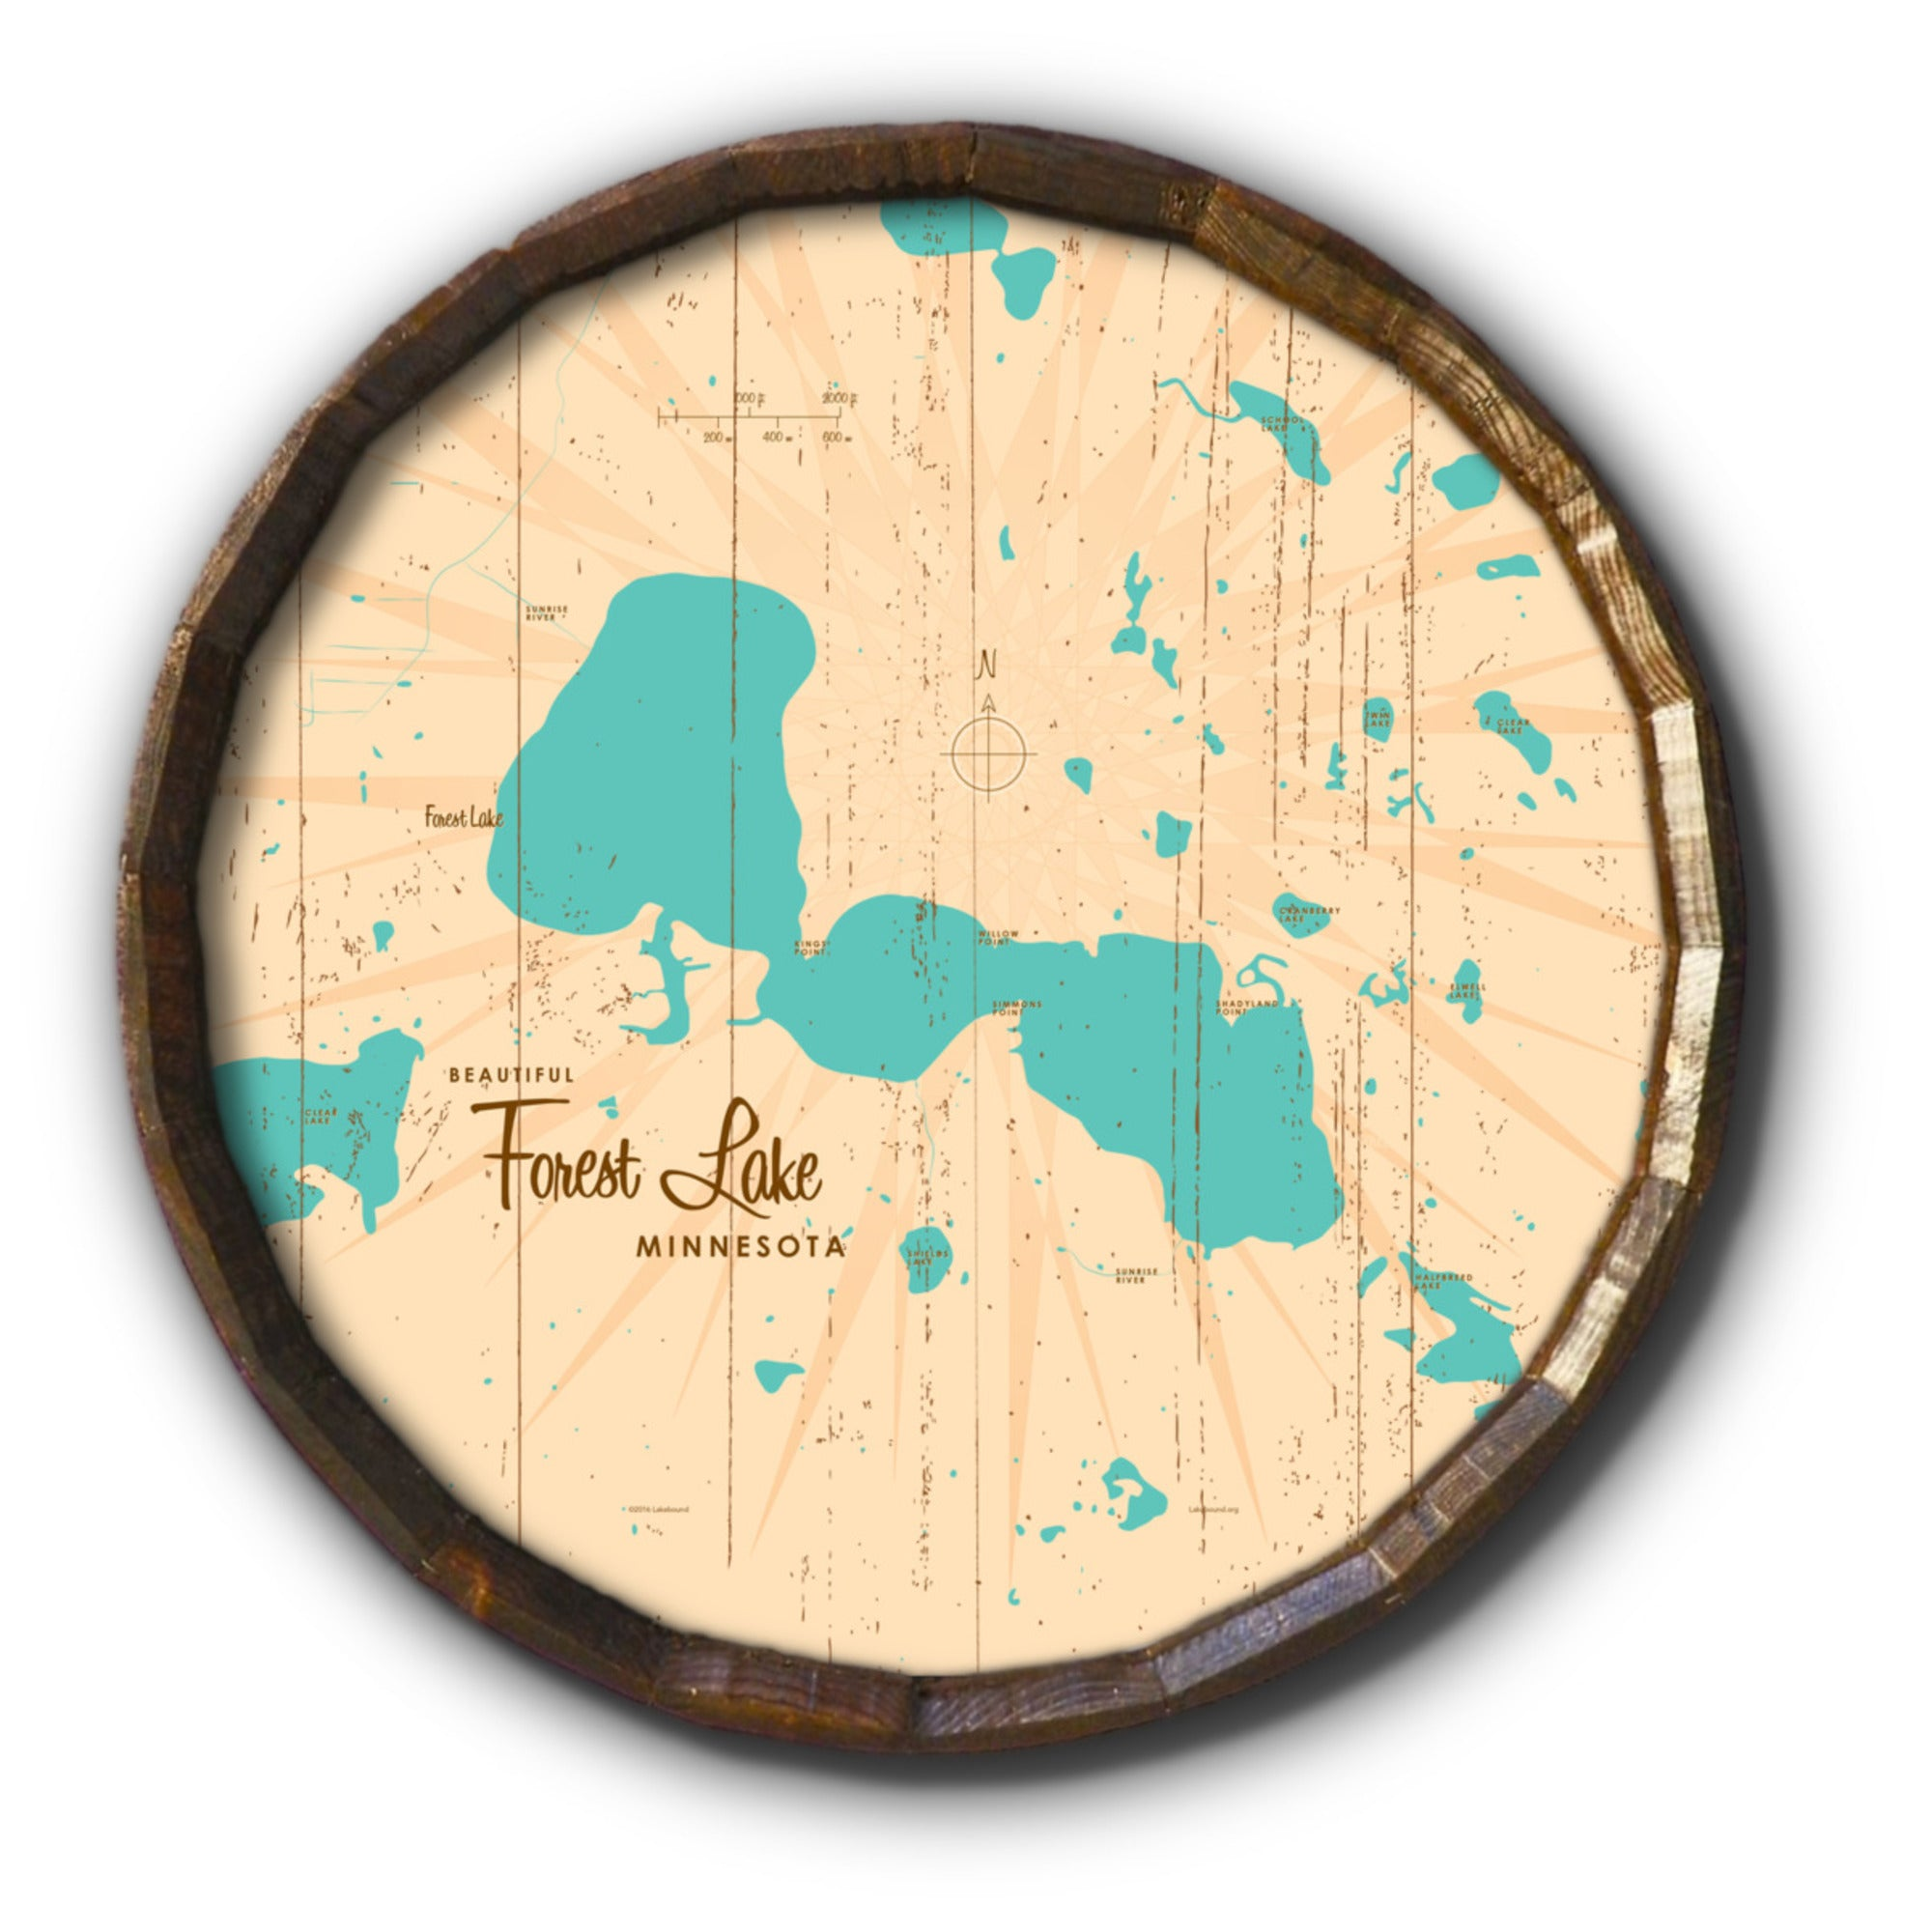 Forest Lake Minnesota, Rustic Barrel End Map Art